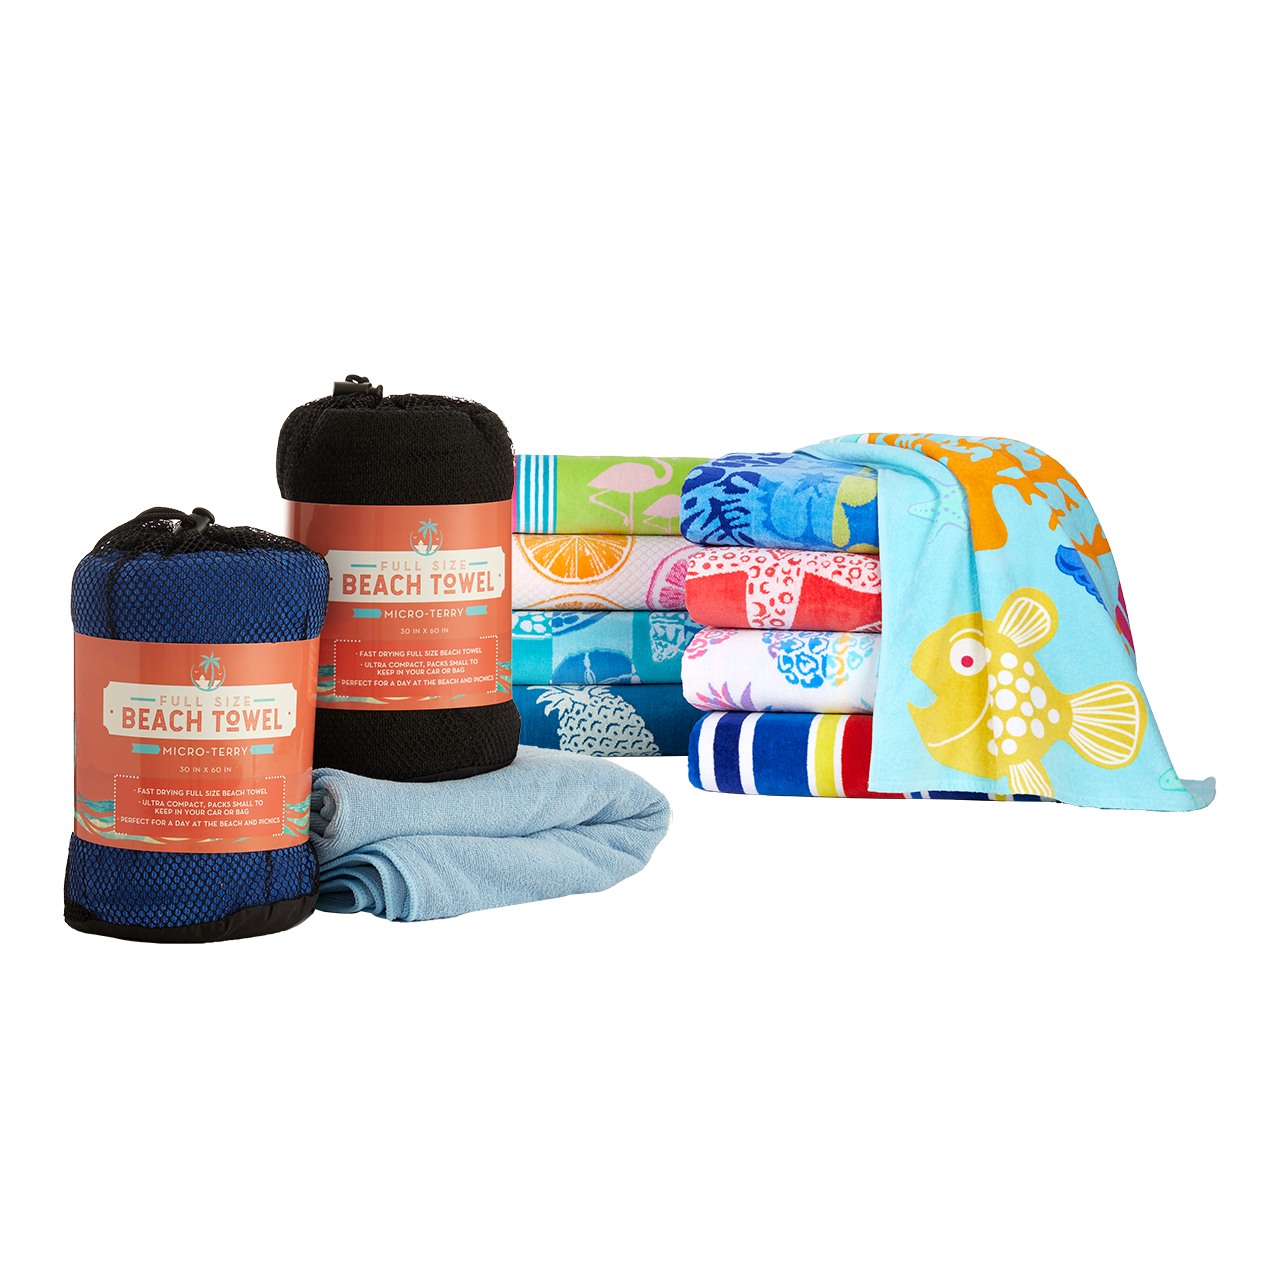 Beach Towels and Accessories